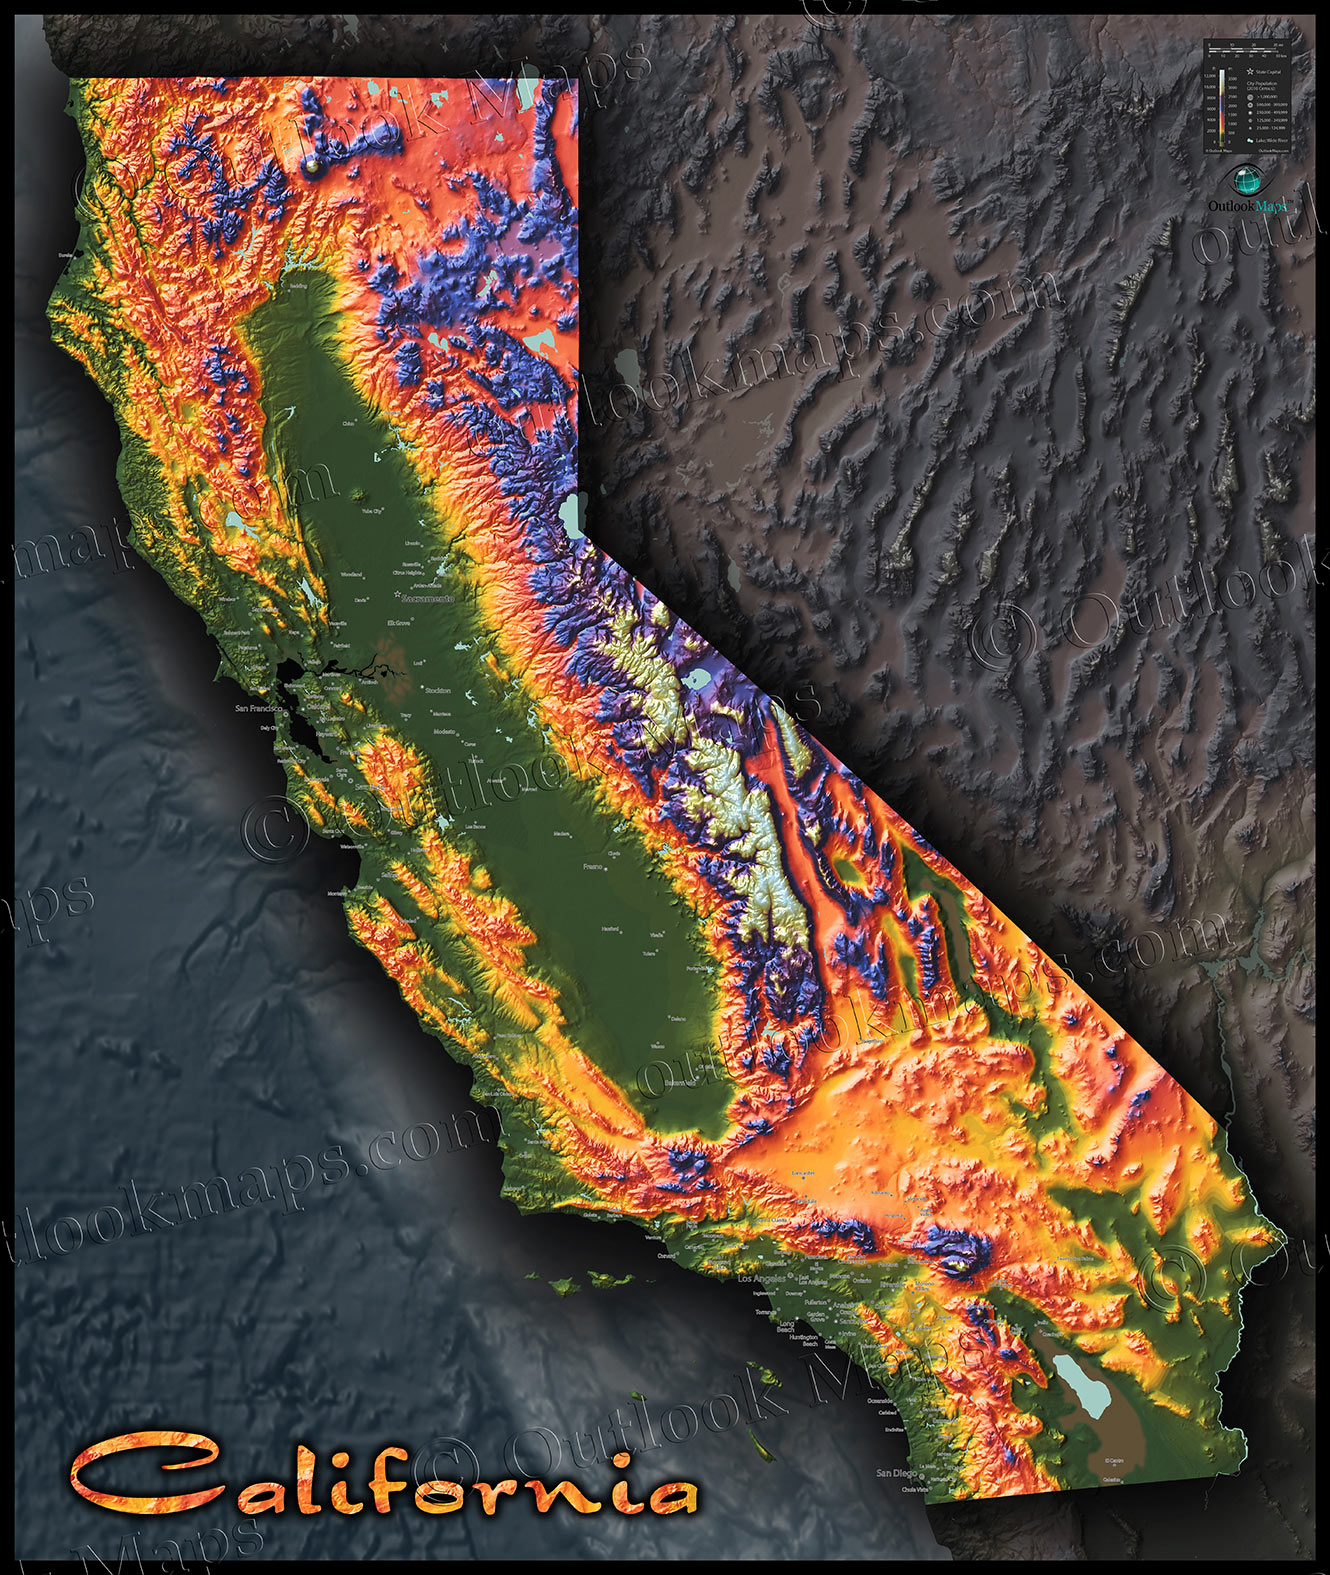 Colorful California Map | Topographical Physical Landscape - California Topographic Map Elevations